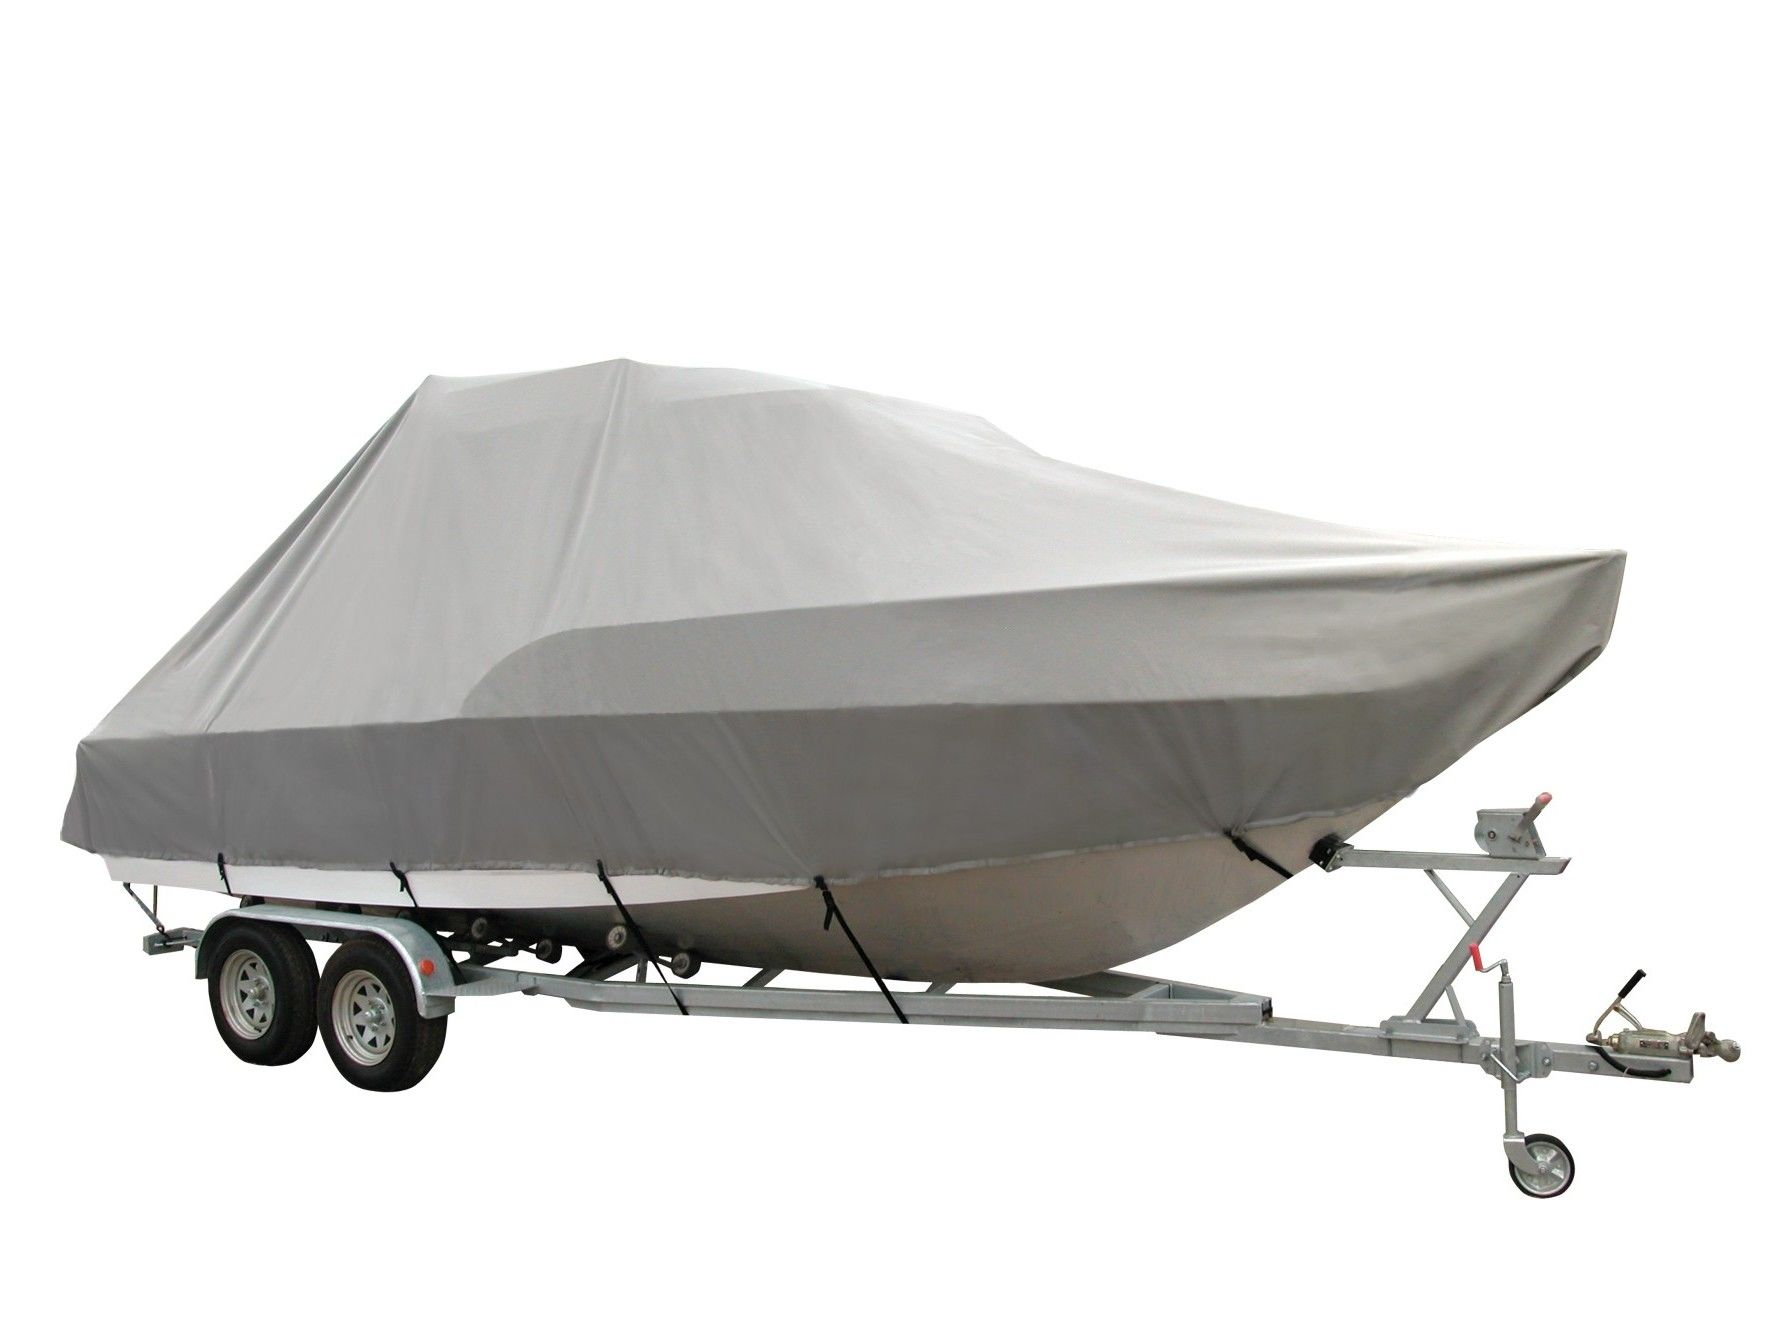 Awning For Boat-7.6-8.2 M MA5014